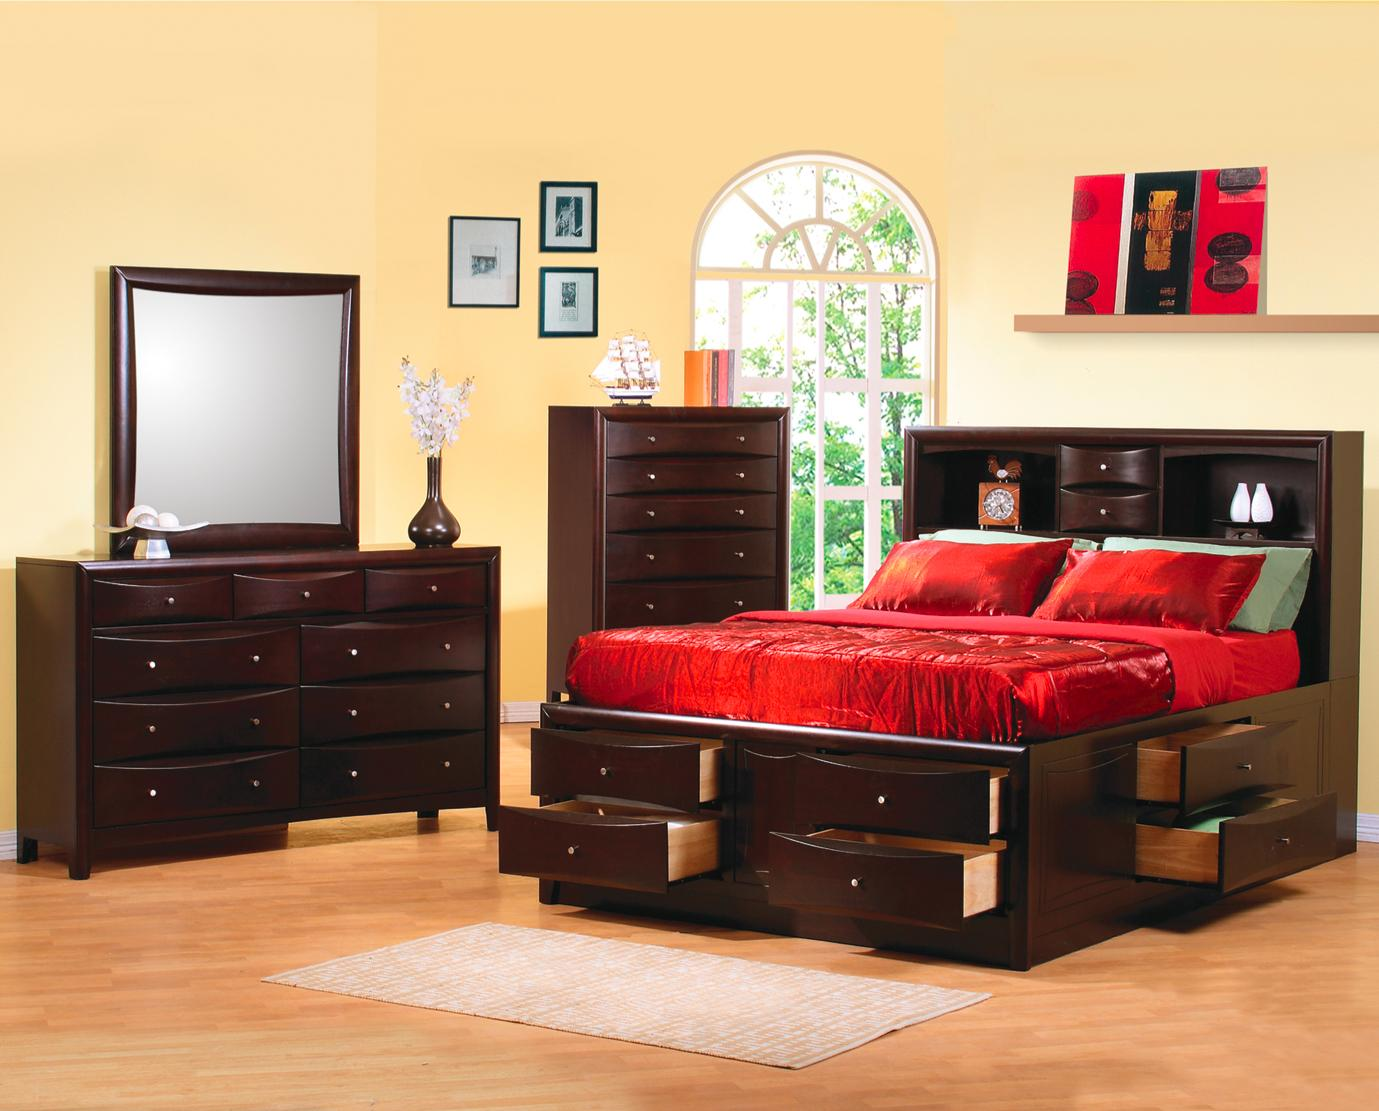 Phoenix King Bedroom Group by Coaster at Northeast Factory Direct